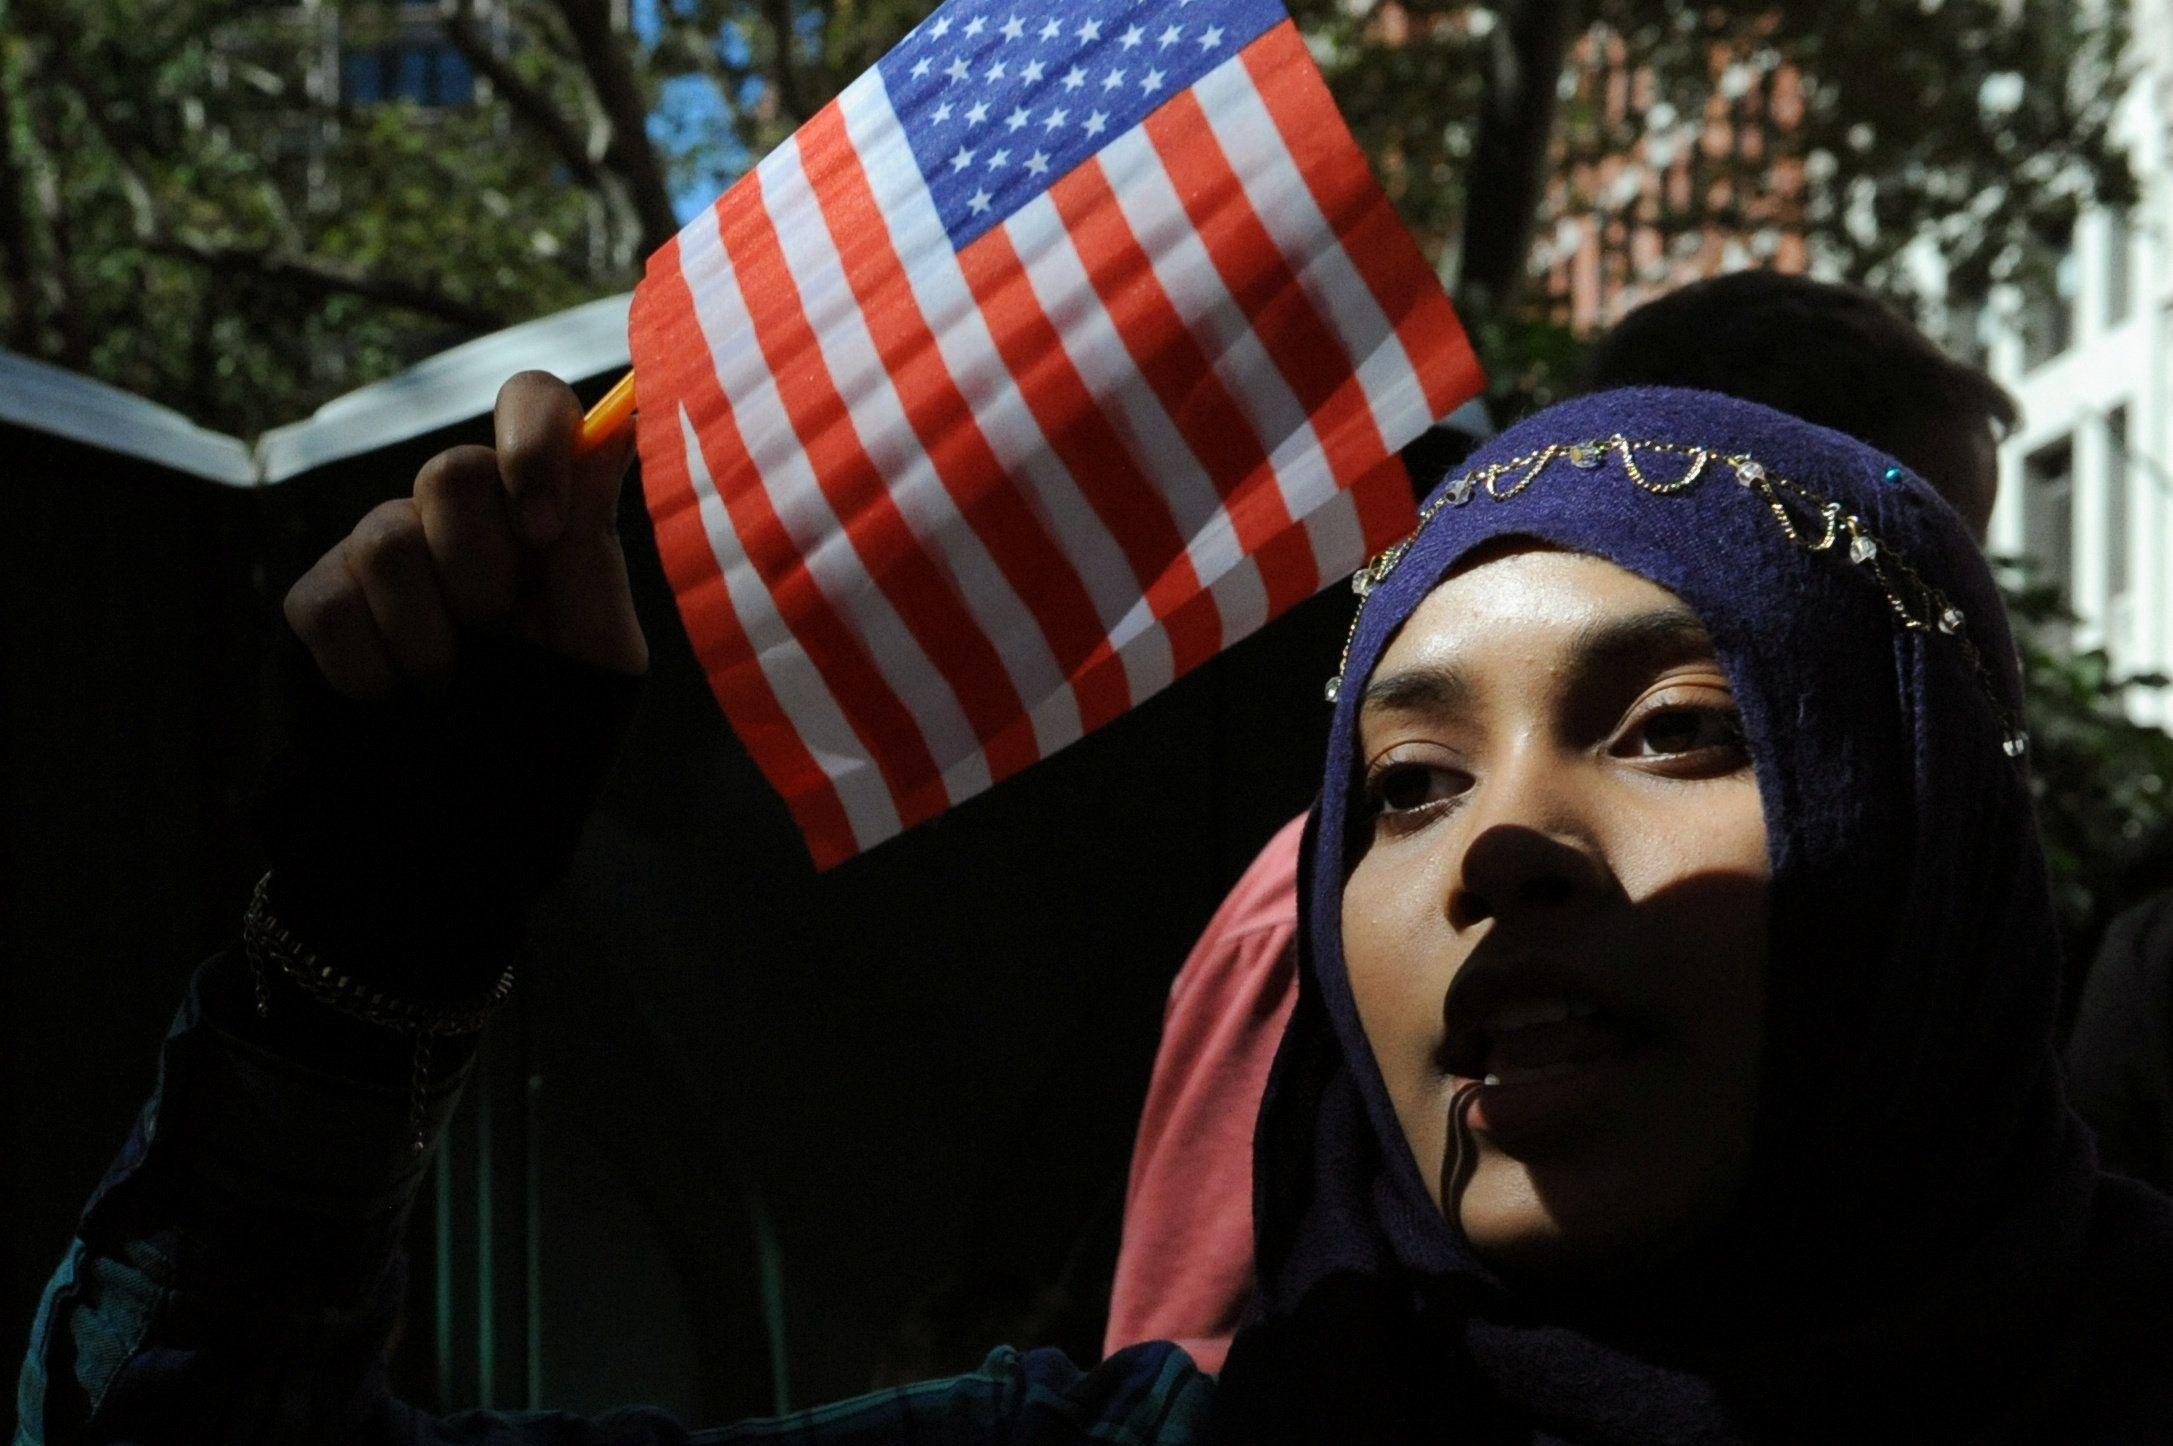 People participate in the annual Muslim Day Parade in Manhattan on Sept. 25, 2016.